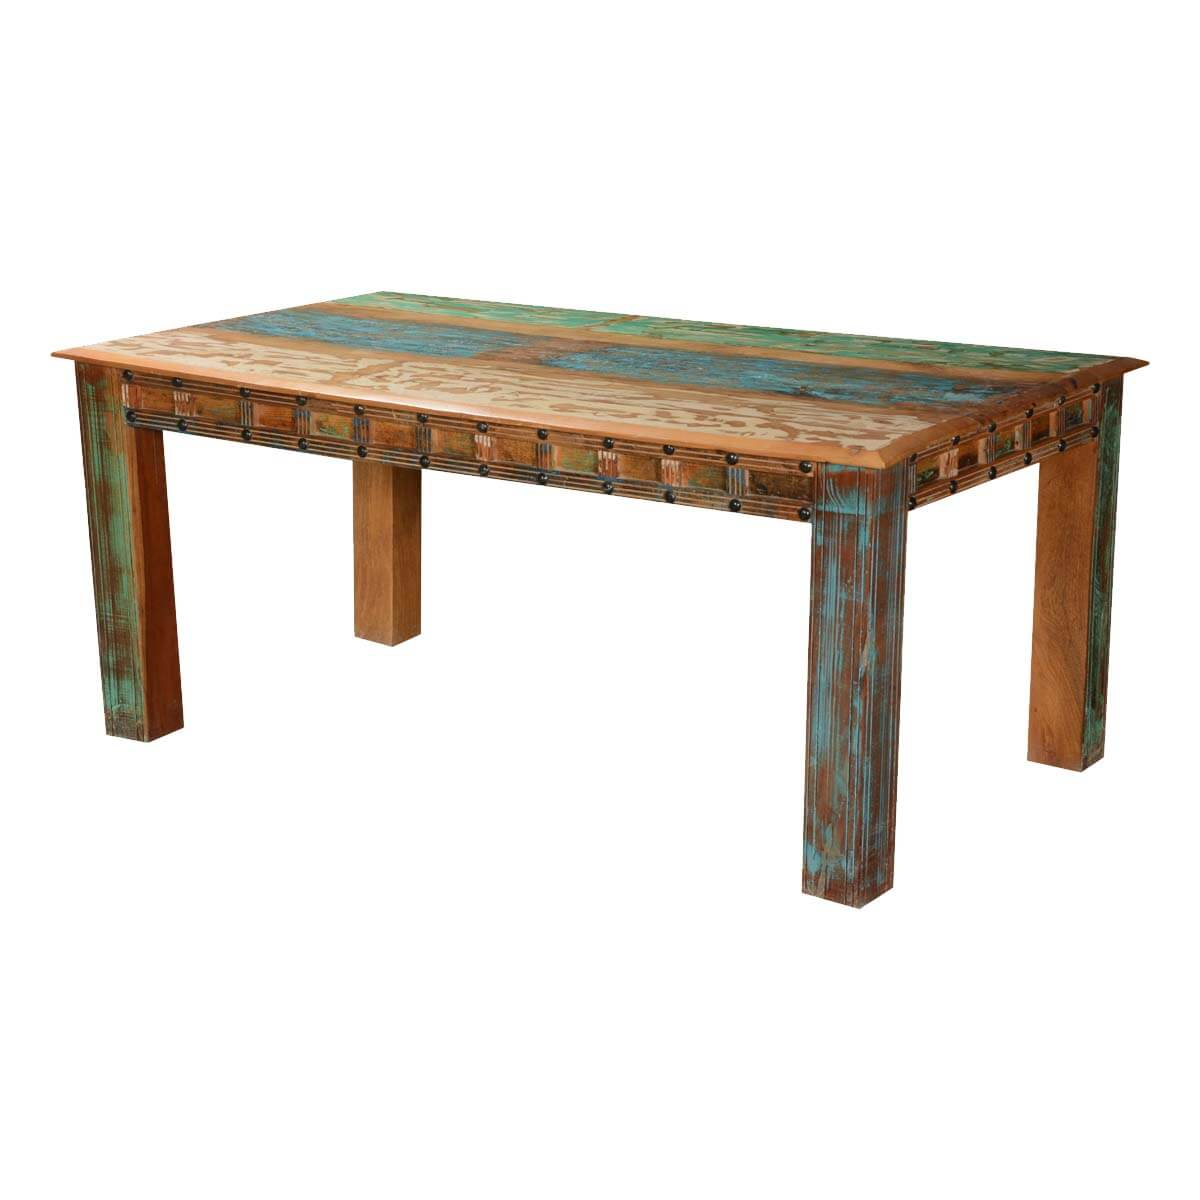 Gothic rustic rainbow reclaimed wood dining table for Reclaimed wood dining table